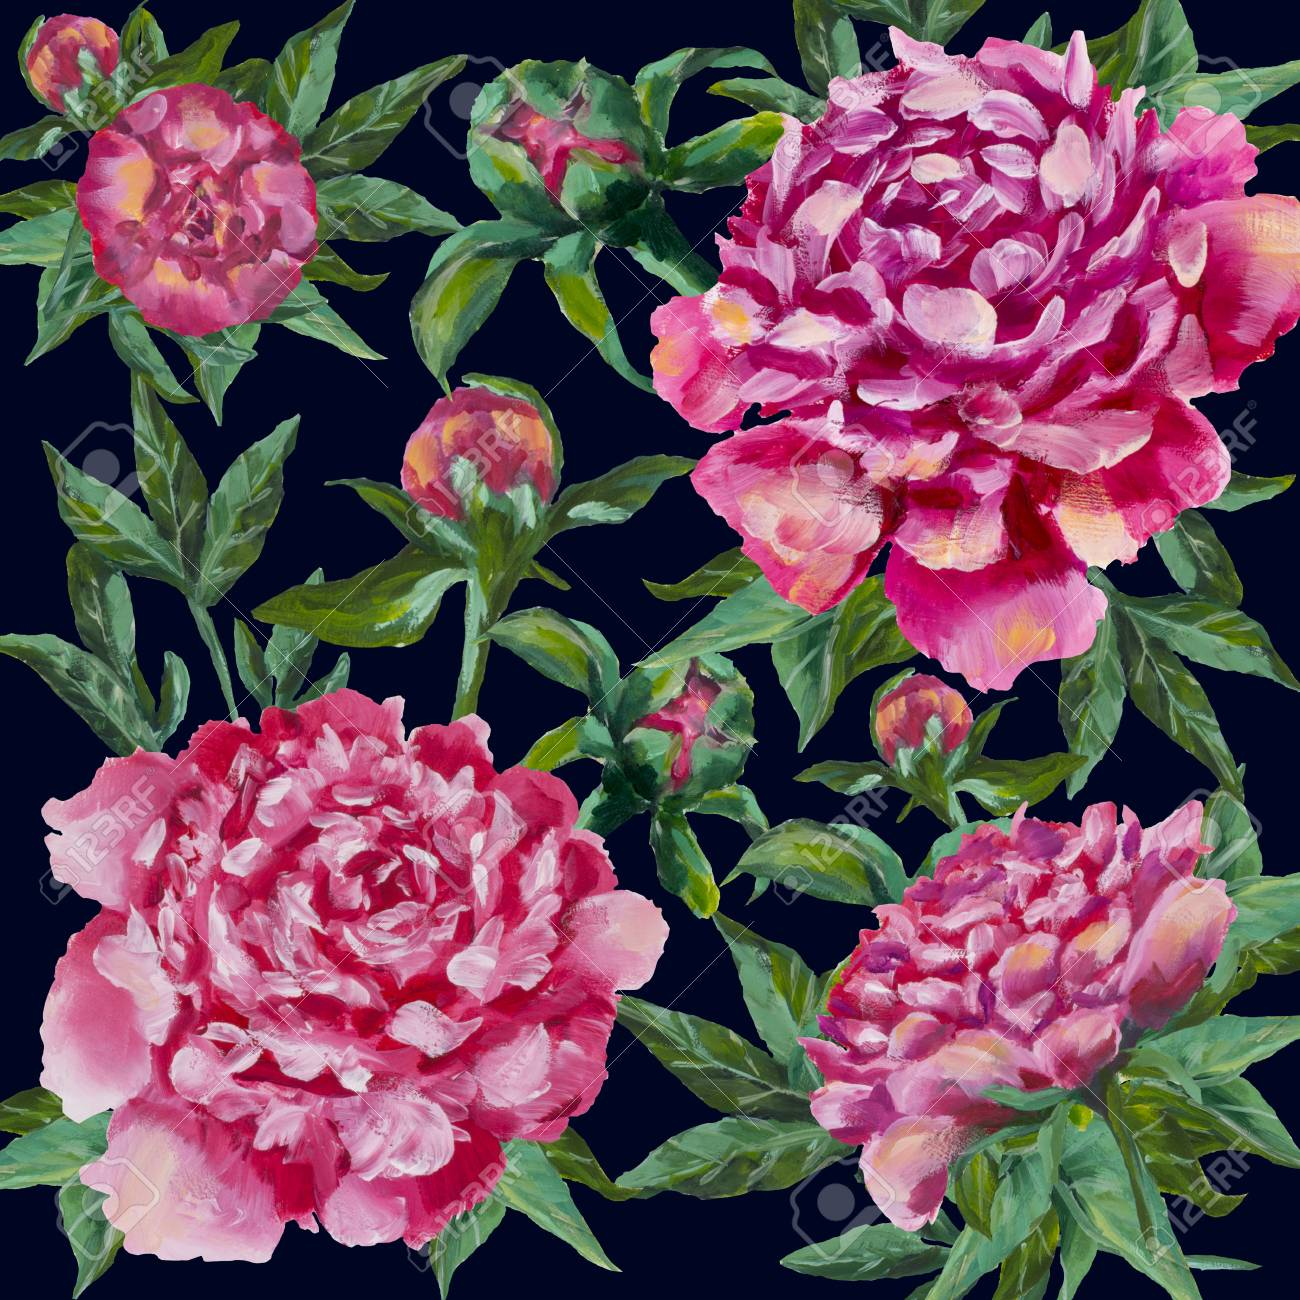 Peonies flowers design oil painting pink peony roses with green illustration peonies flowers design oil painting pink peony roses with green leaves floral flower hand drawn creative flowers painting mightylinksfo